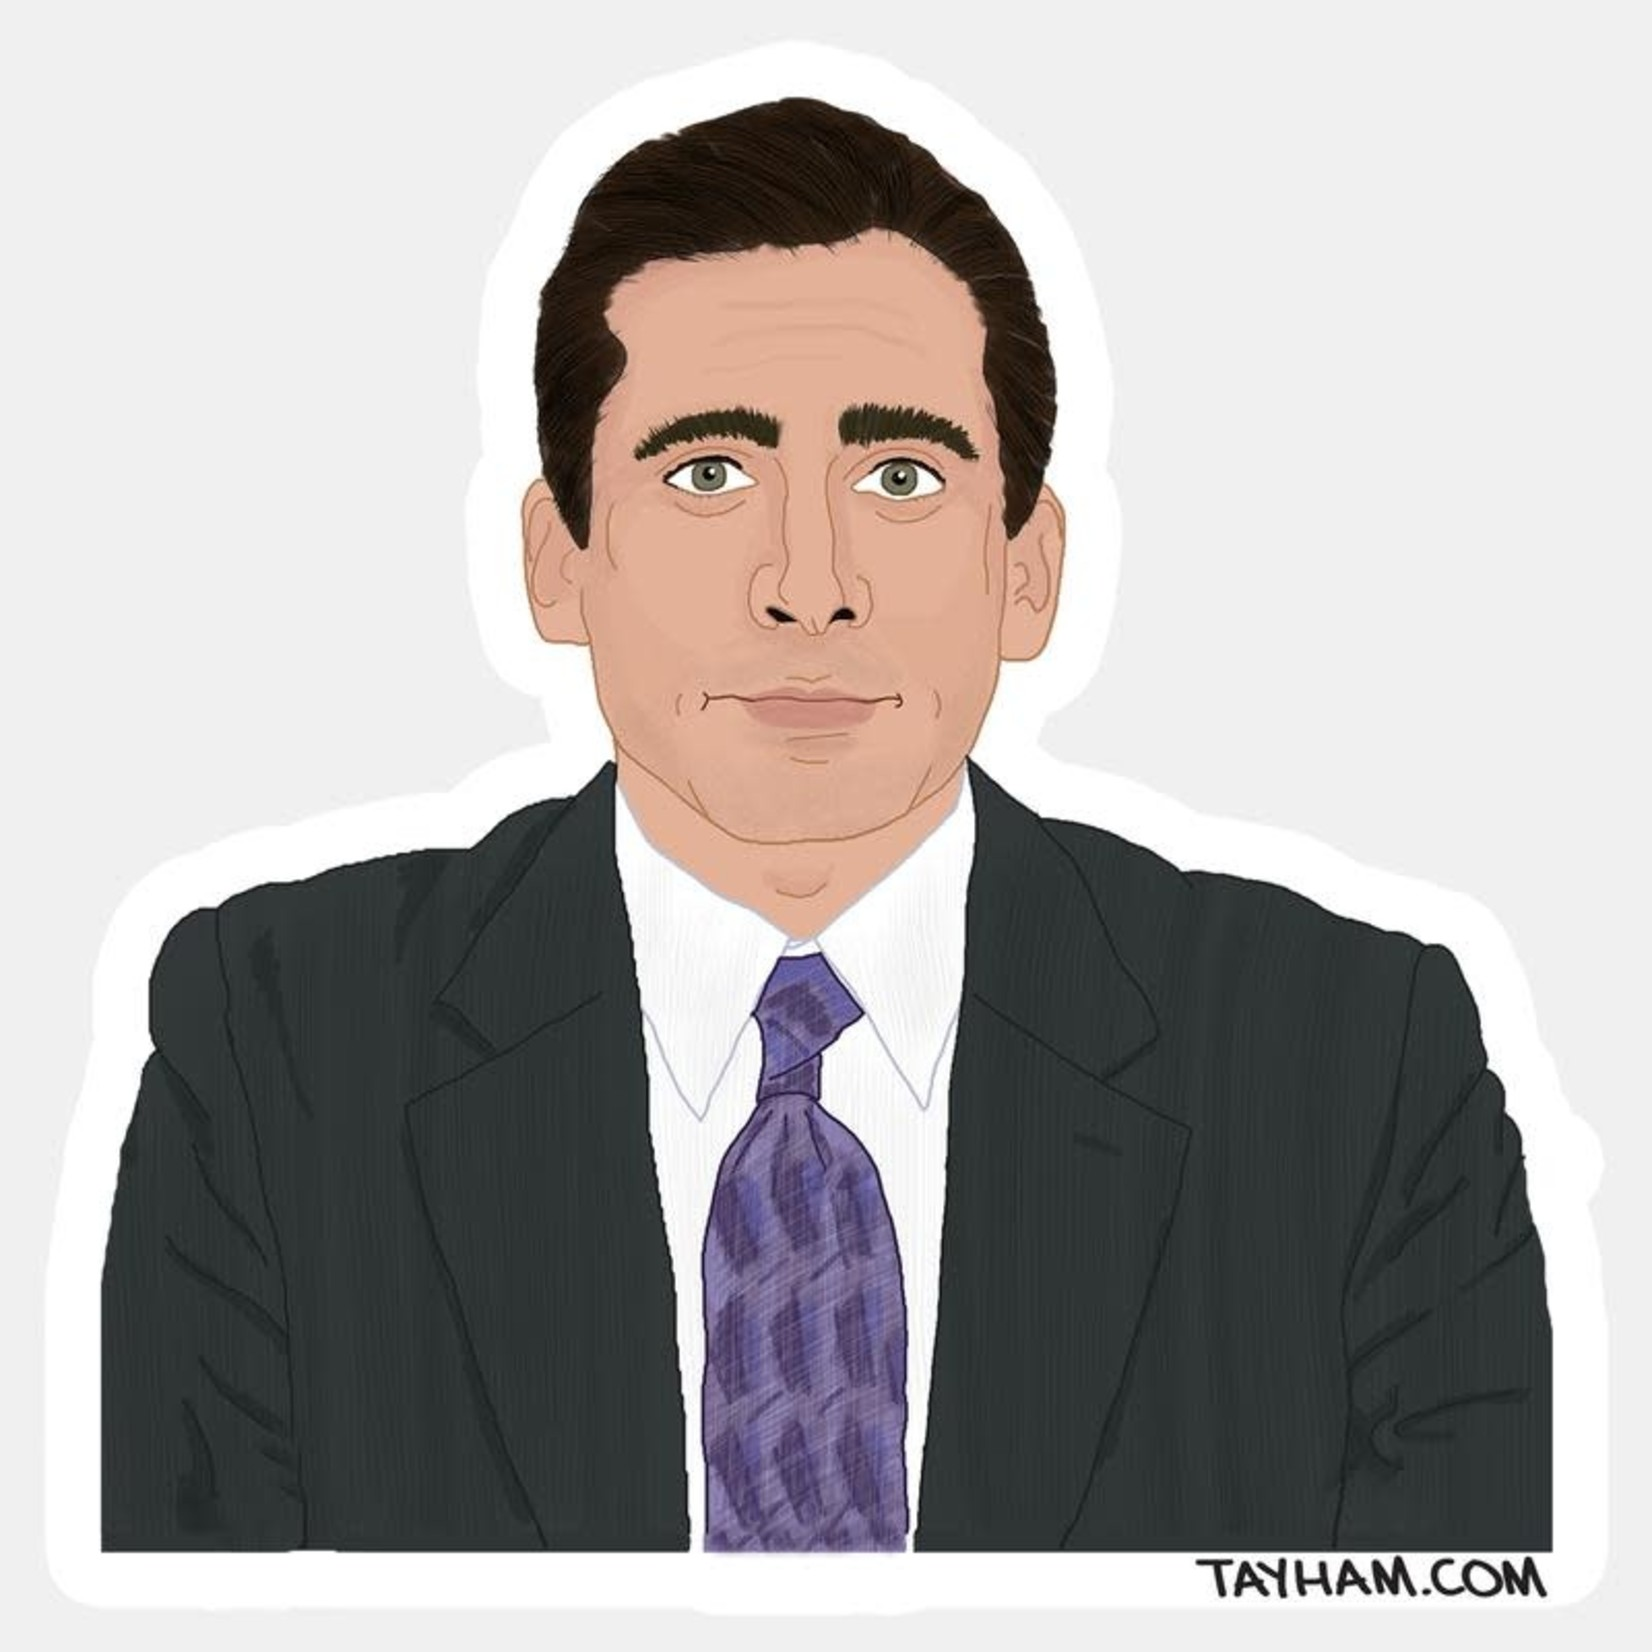 Tay Ham Tay Ham Sticker - THE OFFICE Michael Scott